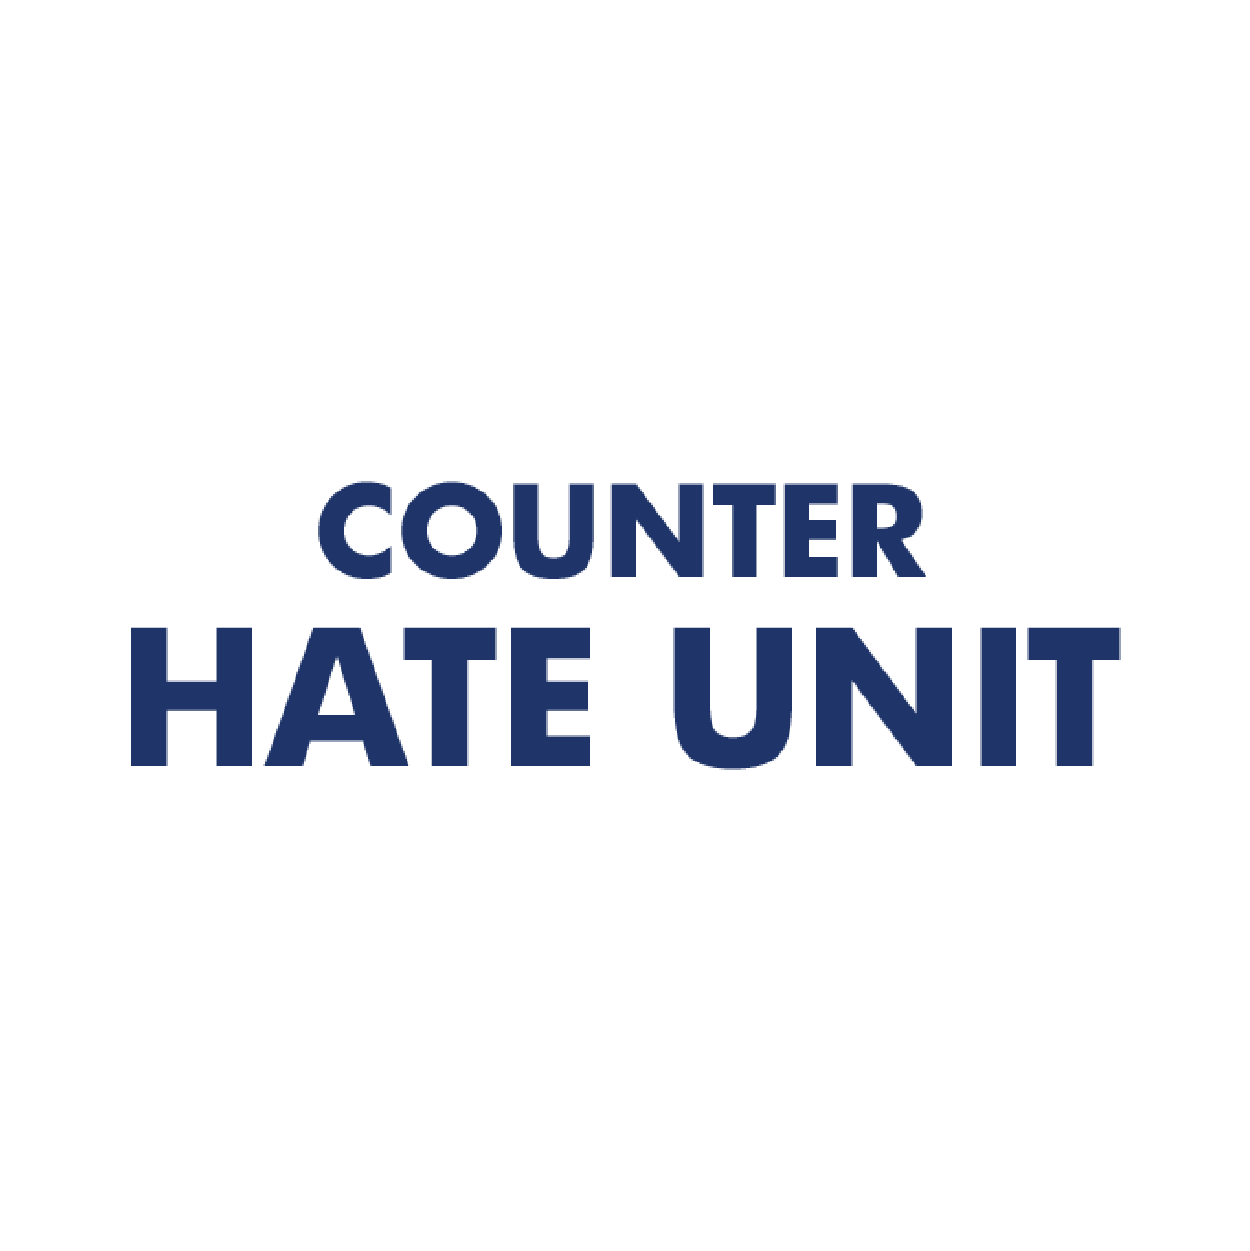 Counter Hate Unit